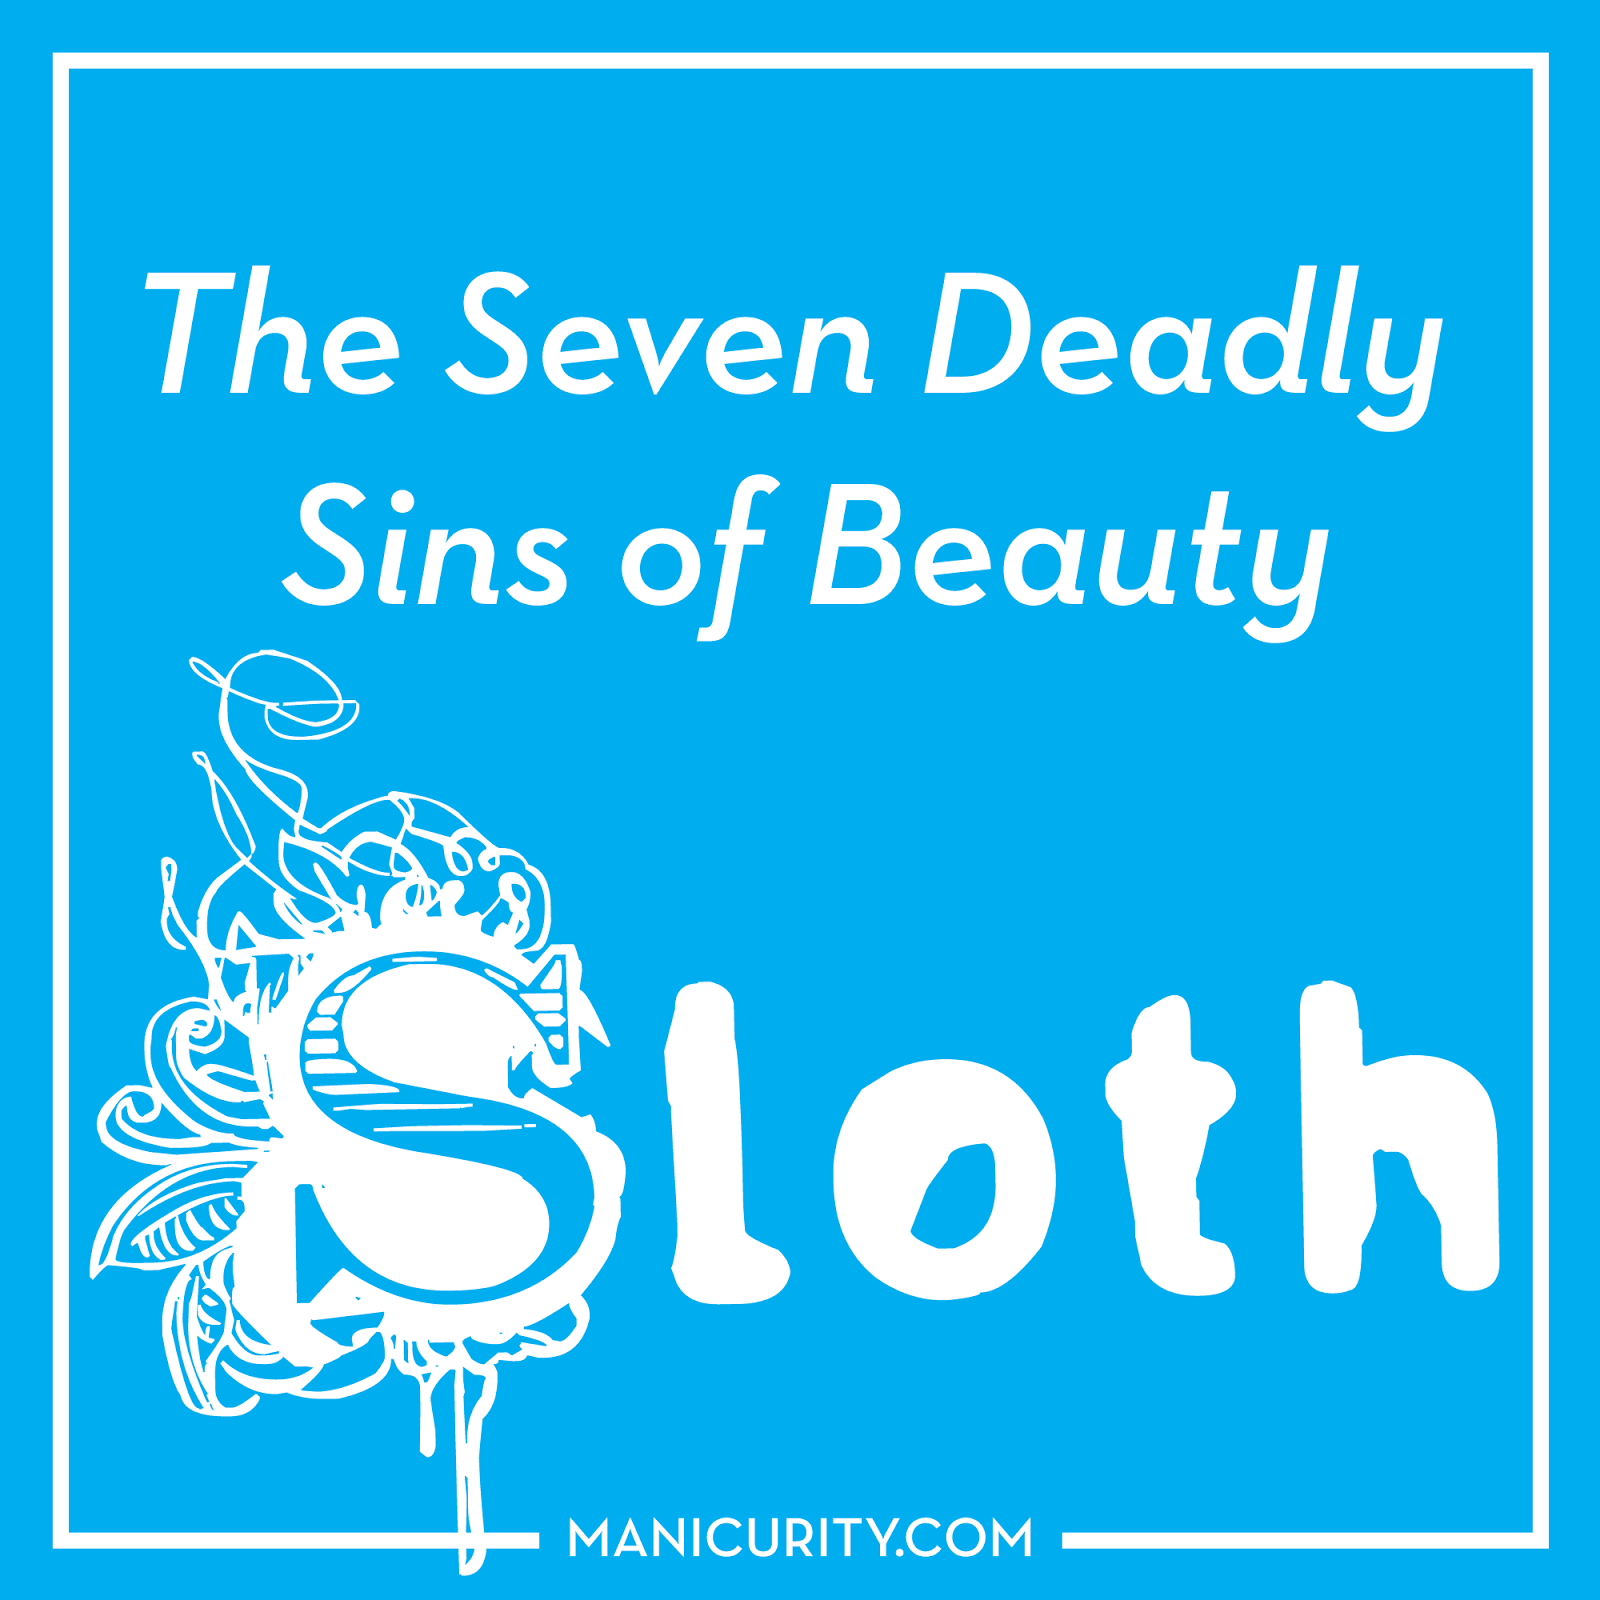 Manicurity: The Seven Deadly Sins Of Beauty